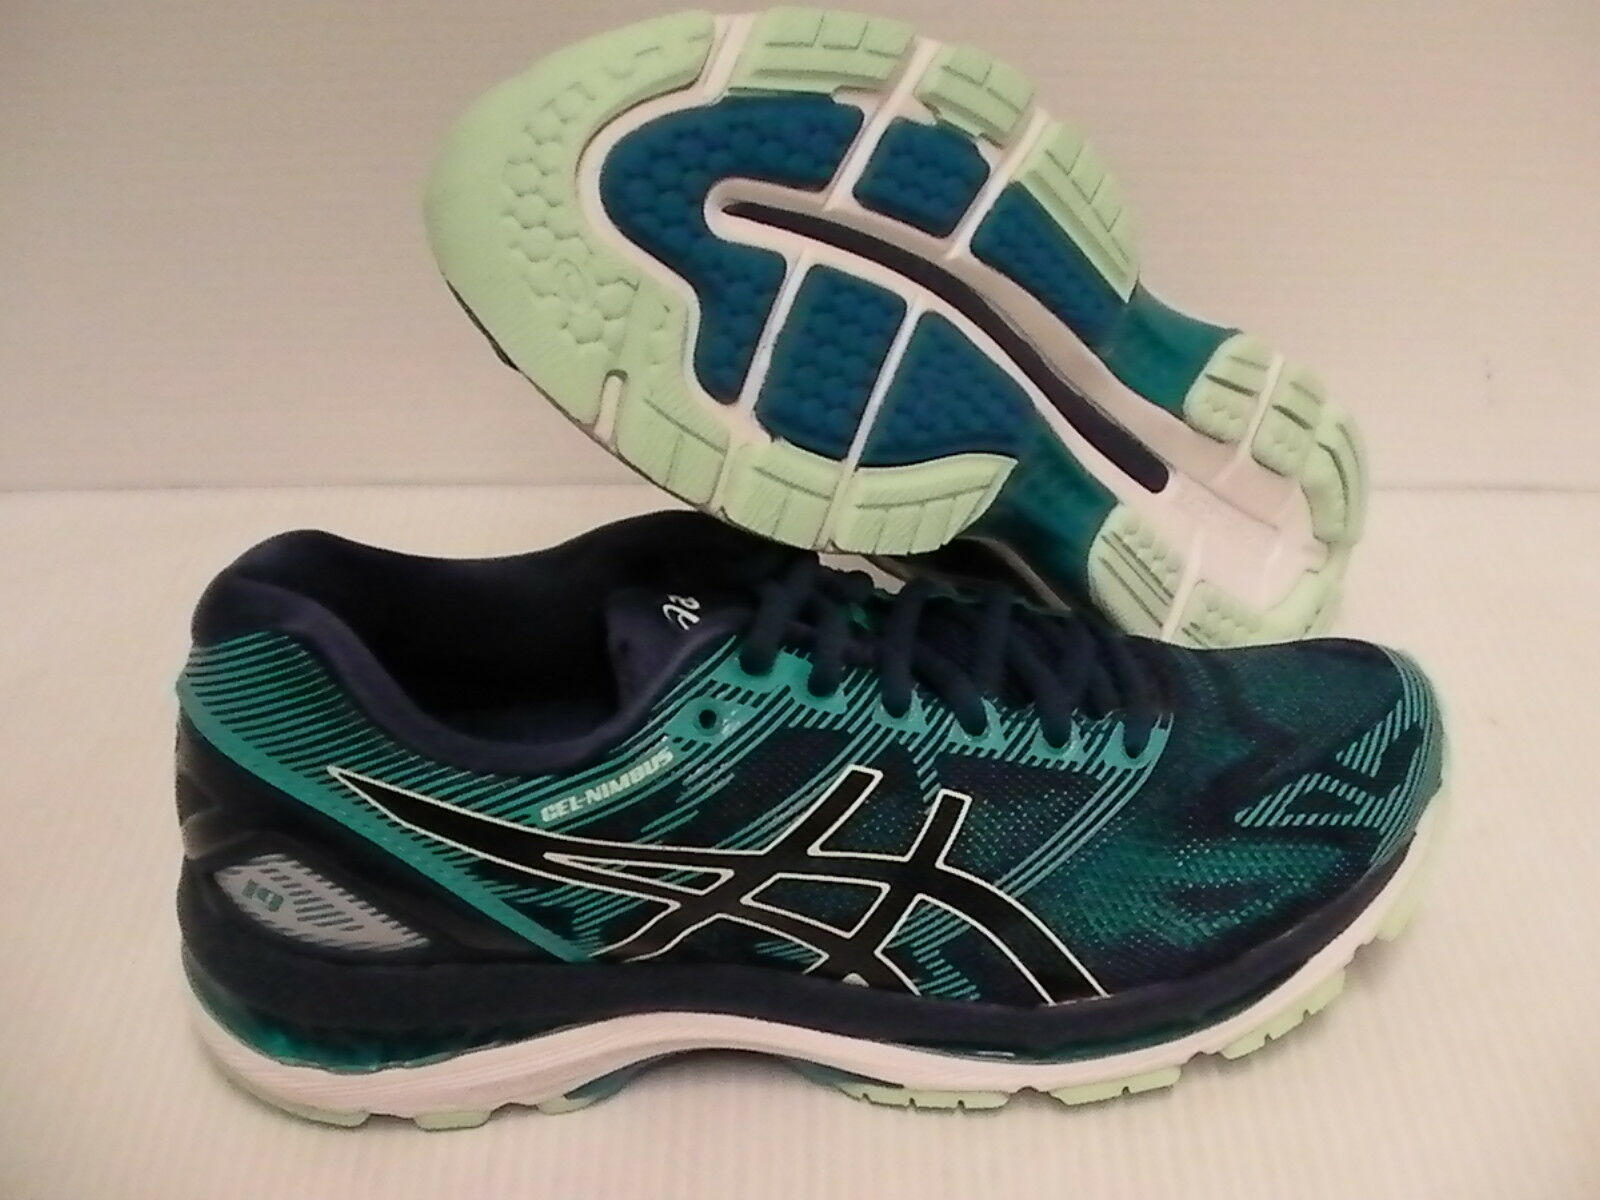 Asics women's gel nimbus 19 insigia bluee glacer sea running shoes size 8.5 us